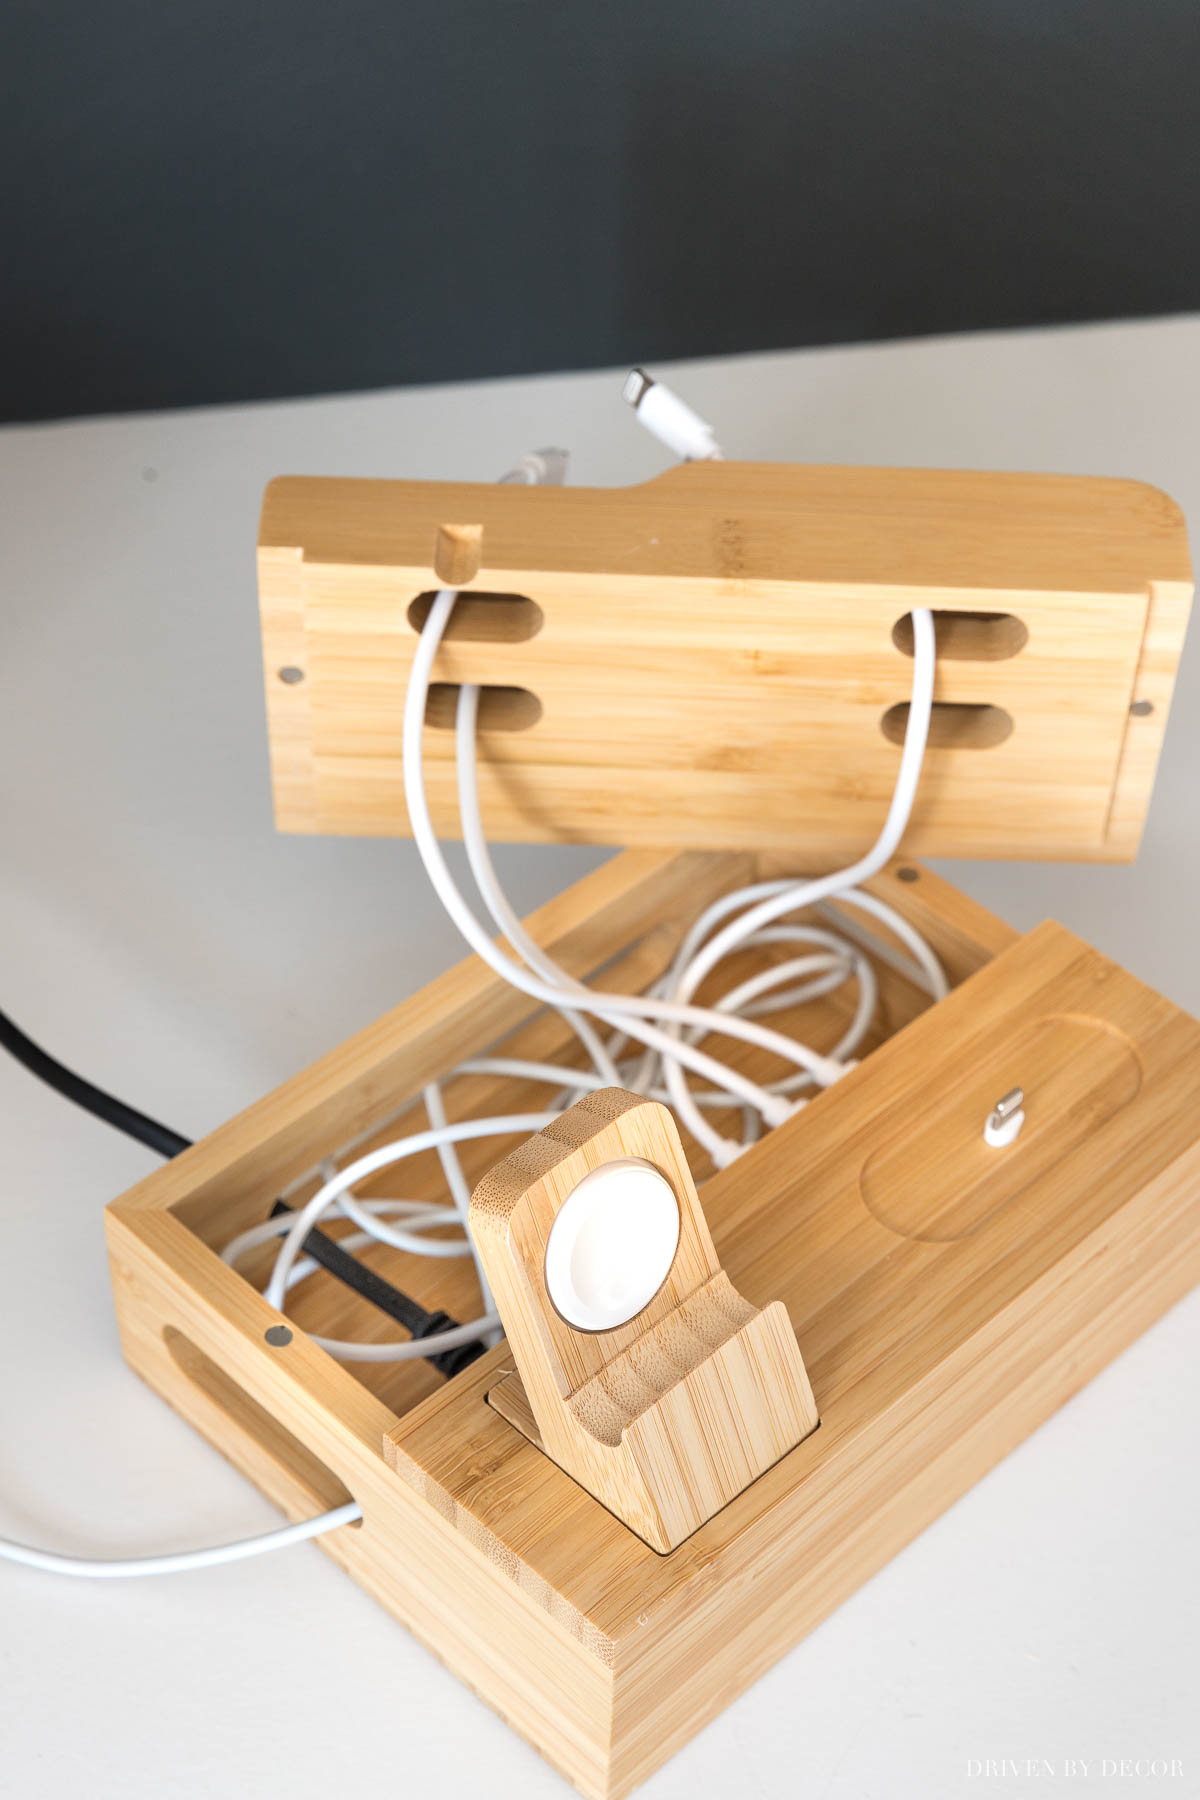 This small charging station is awesome for hiding the mess of charging cords inside!